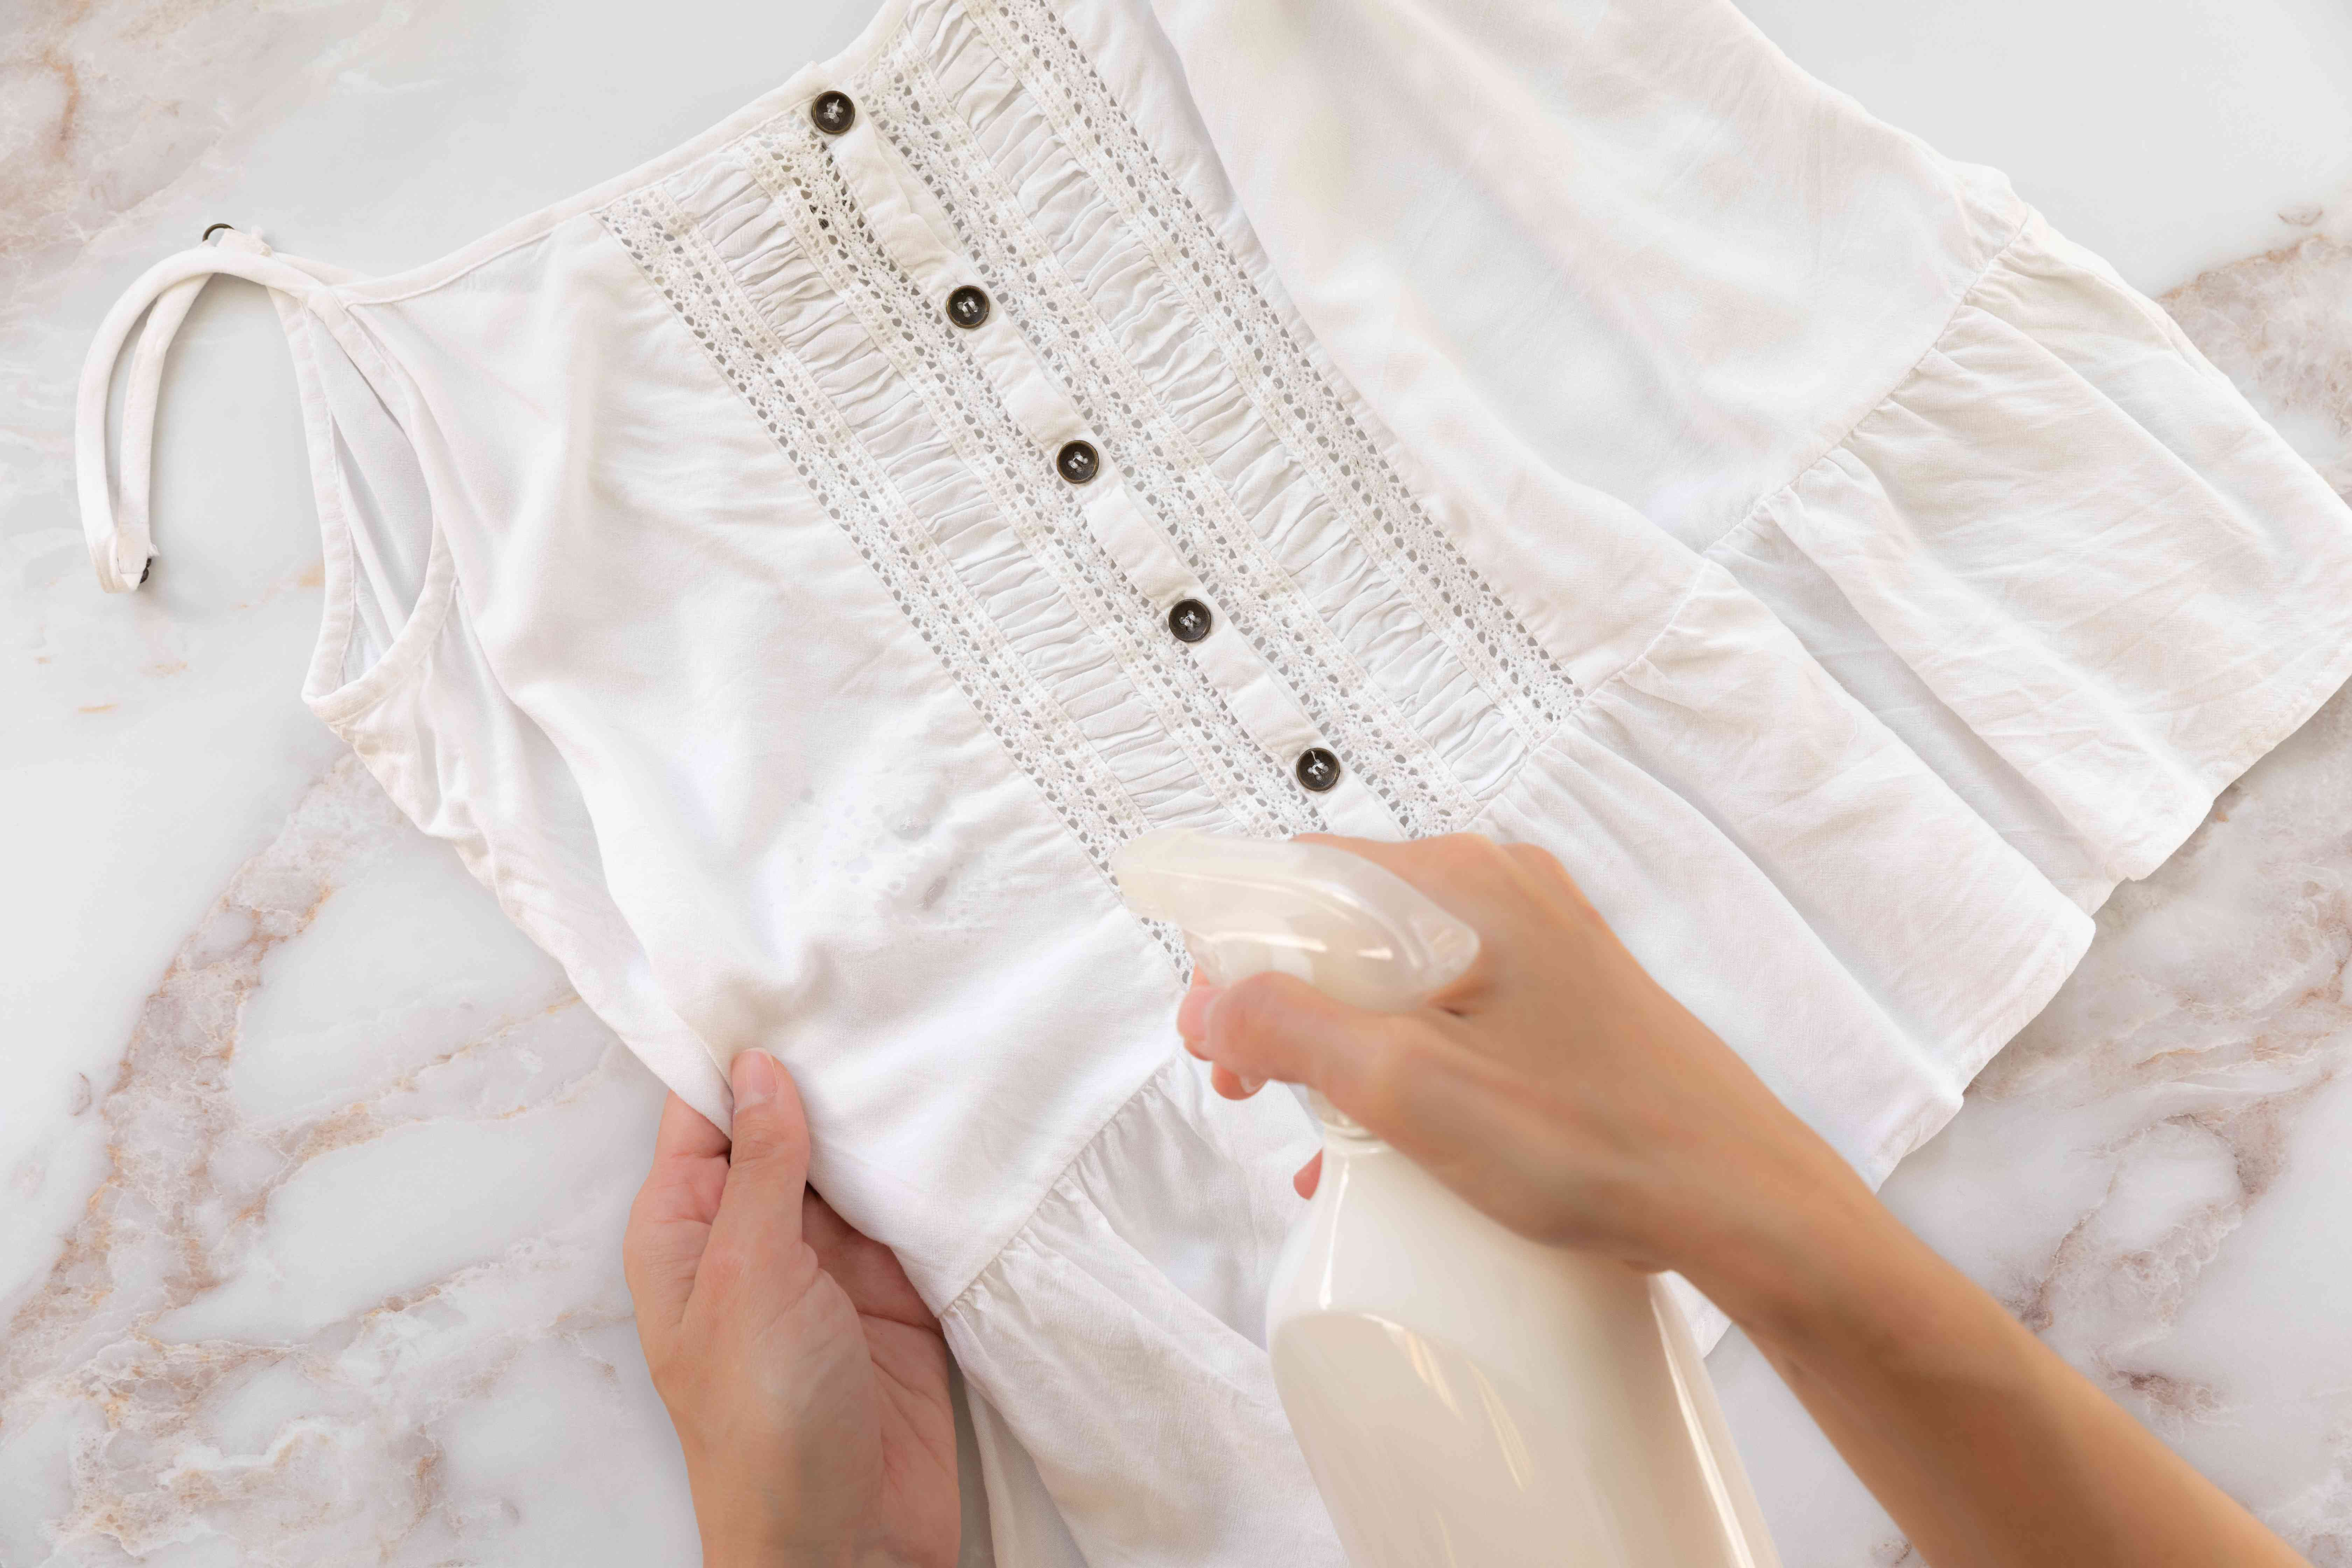 Someone pretreating a stain on a rayon garment